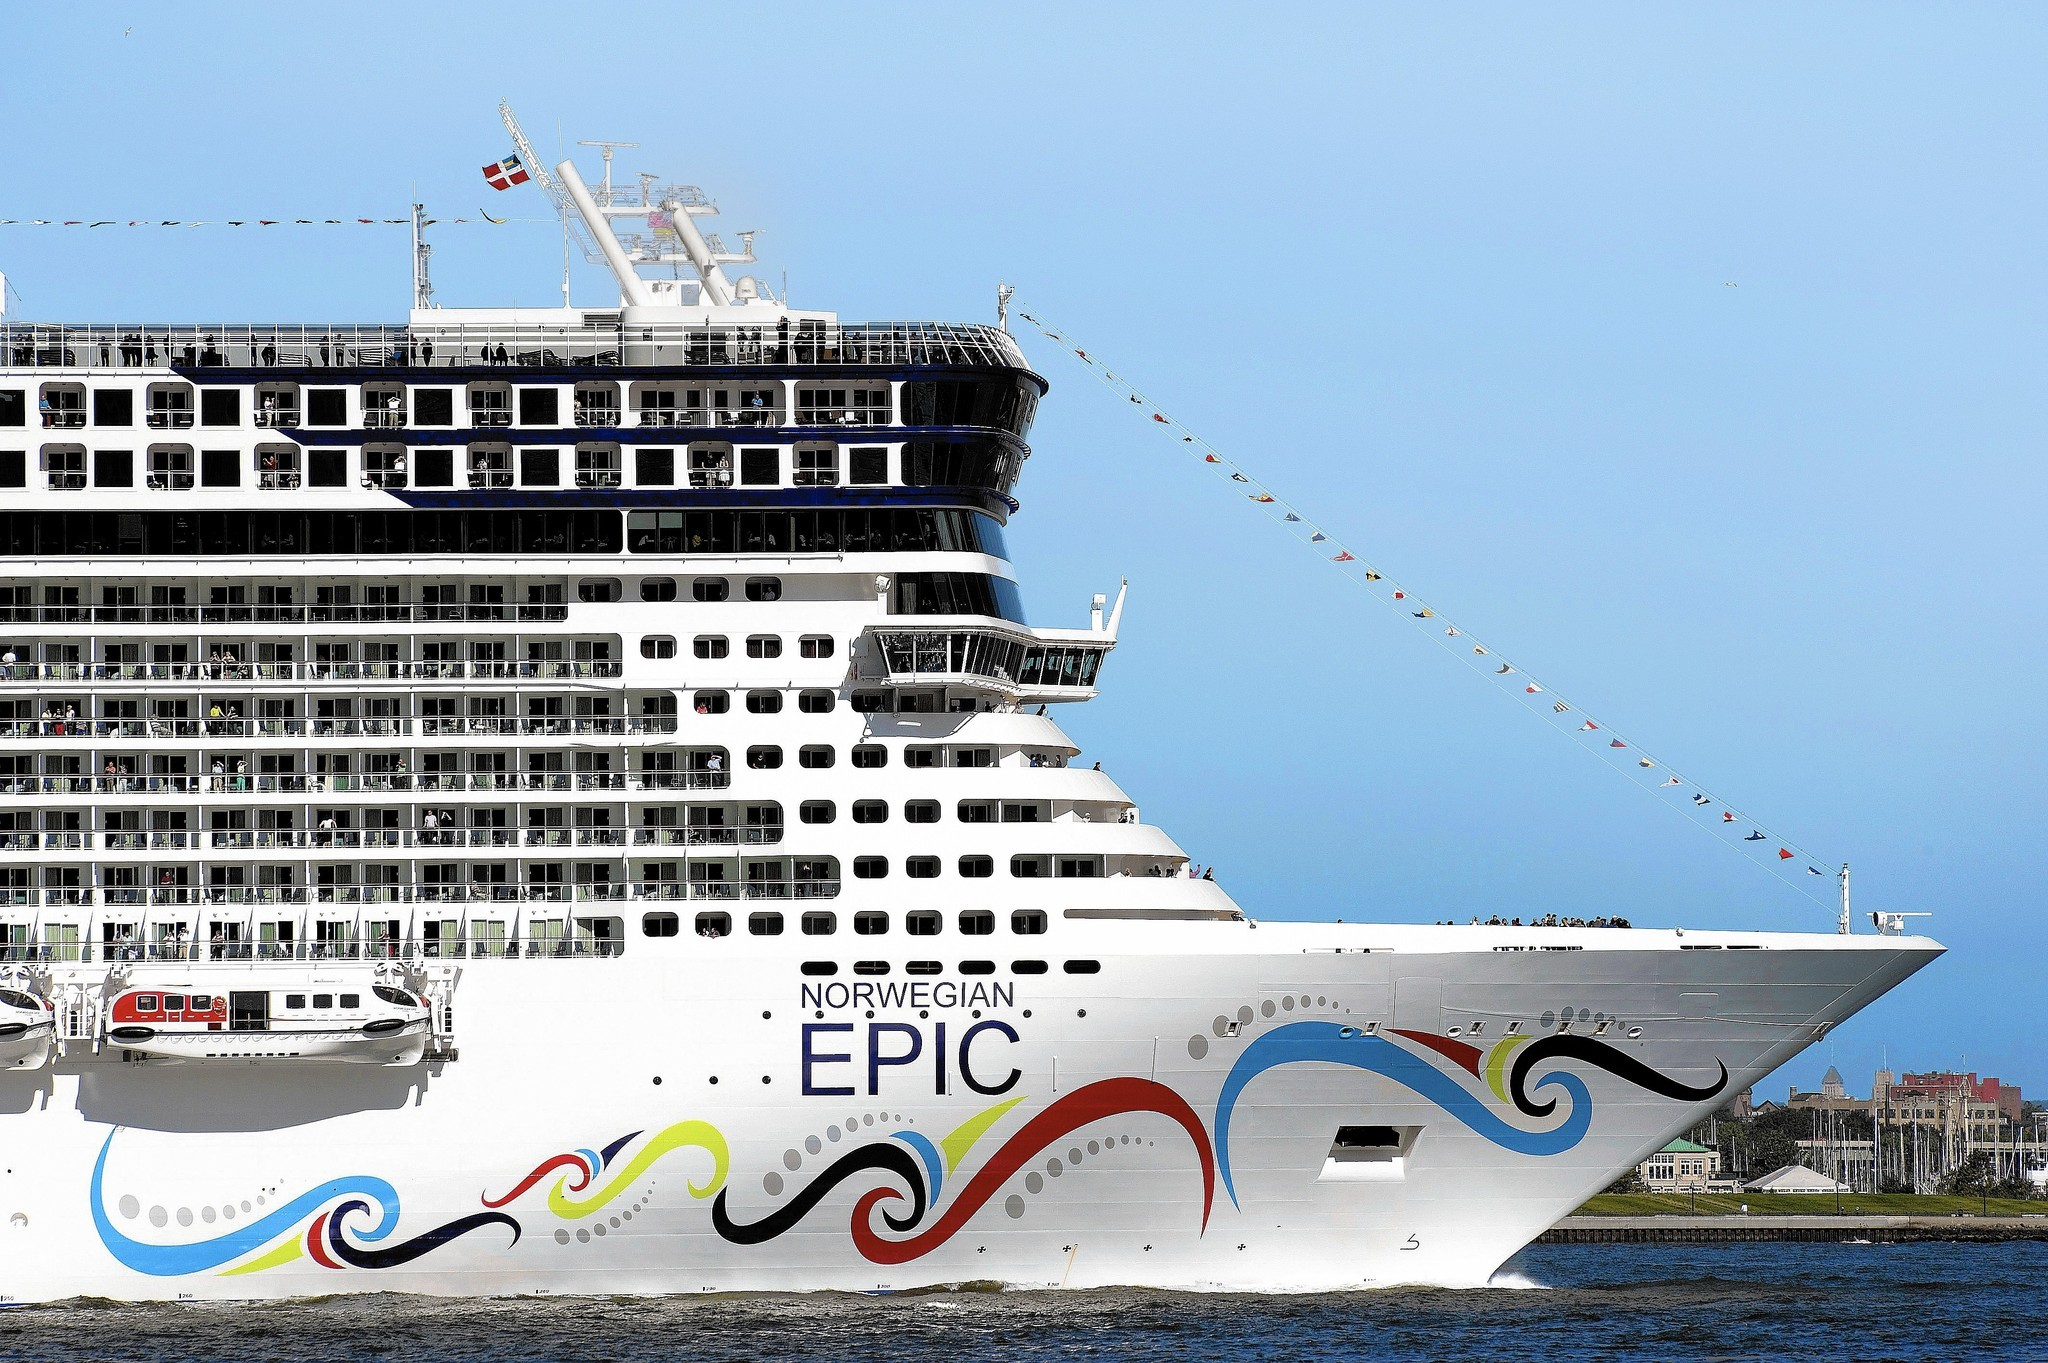 Norwegian Epic Heading To Port Canaveral Orlando Sentinel - Where is port canaveral